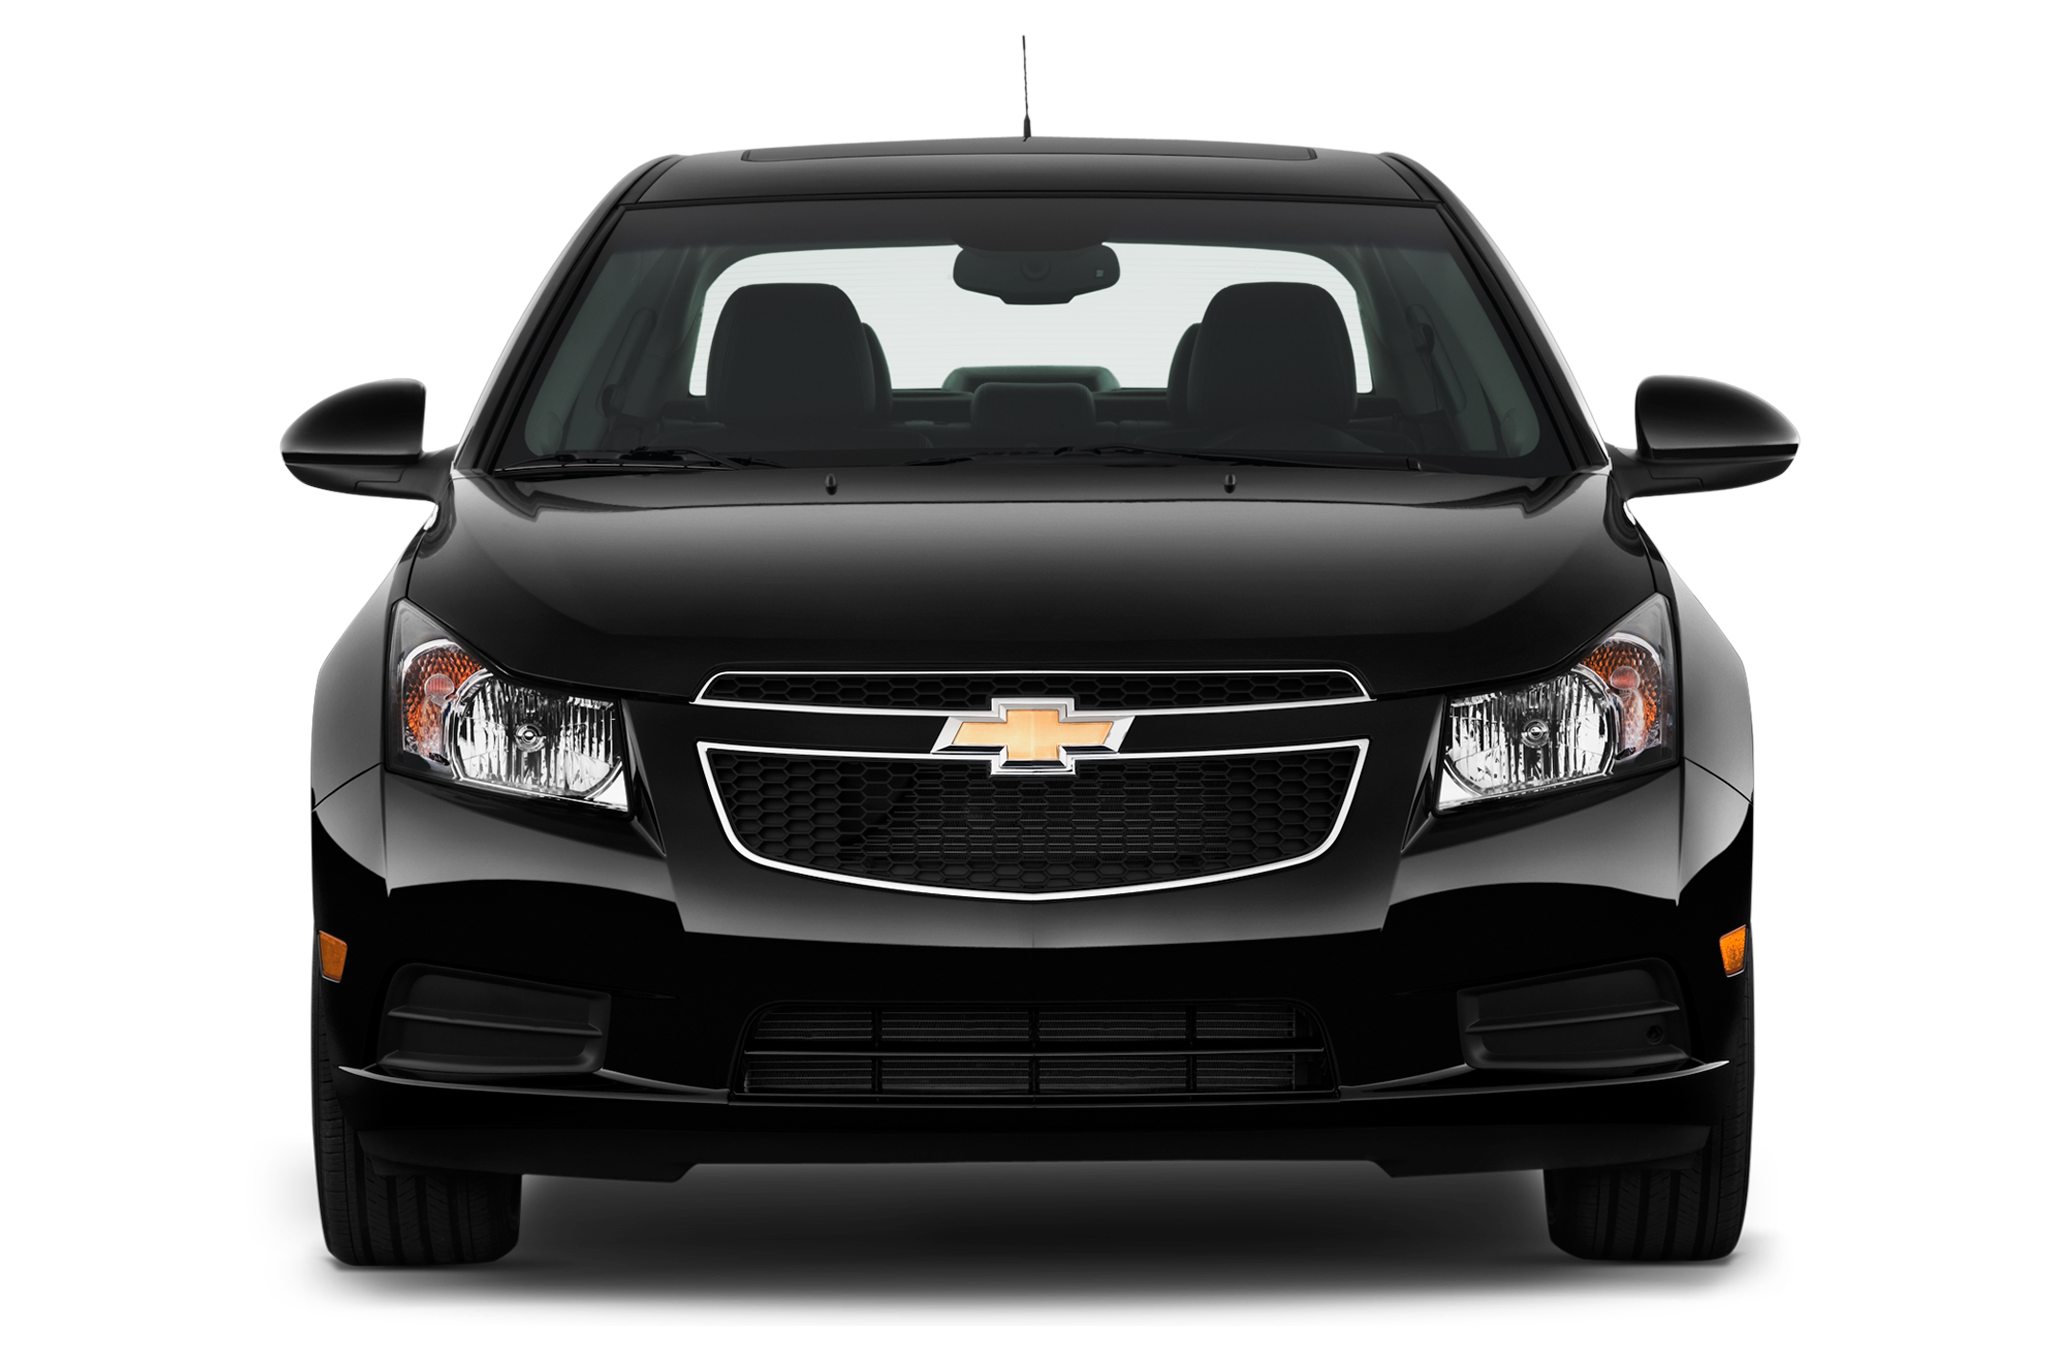 ford the msrp chevy cruze of focus clash chevrolet vs compacts